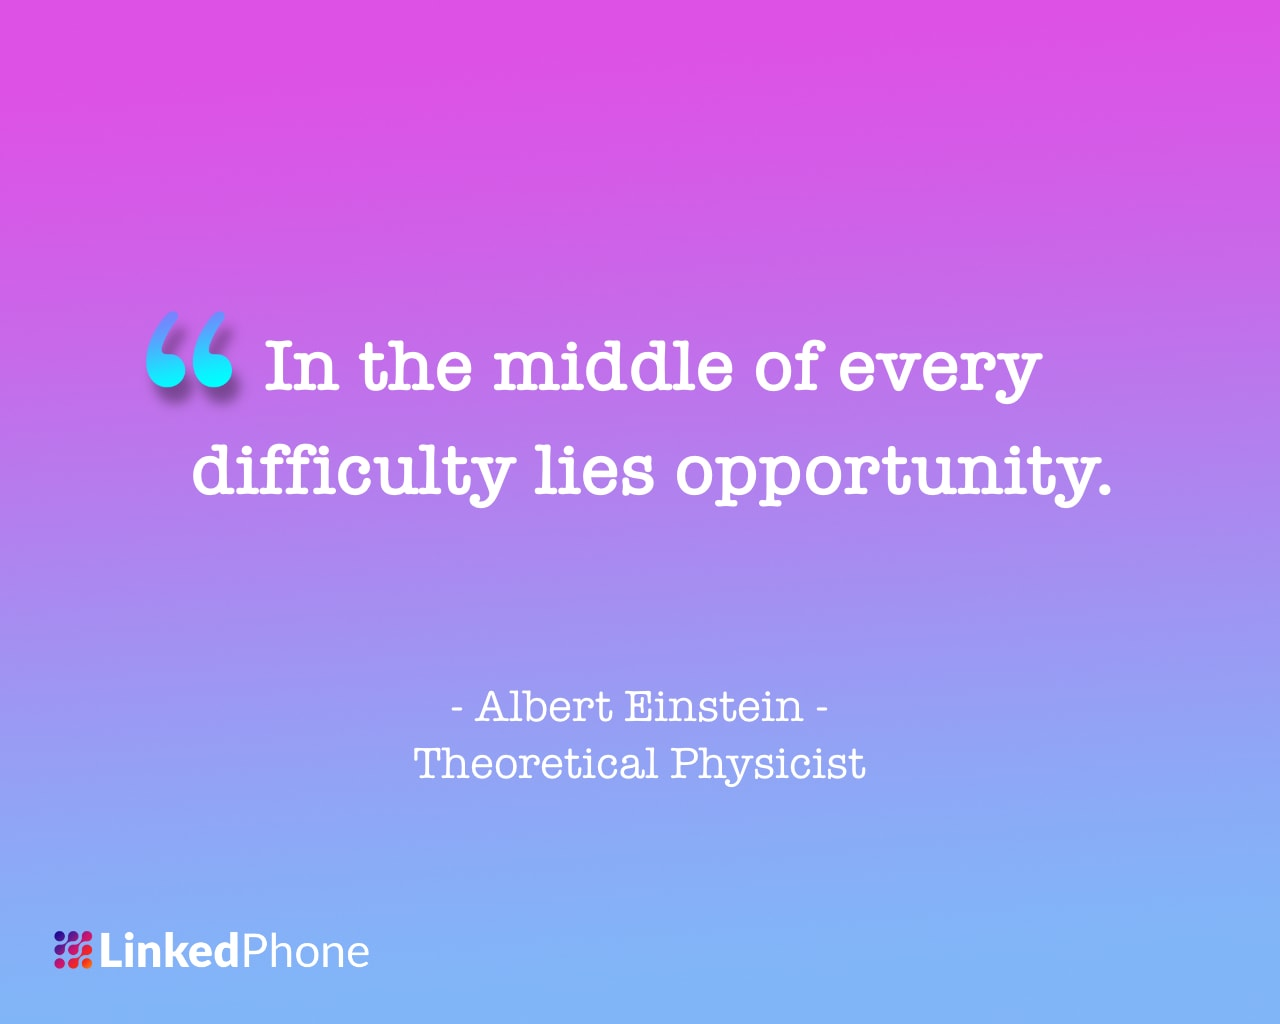 Albert Einstein - Motivational Inspirational Quotes and Sayings